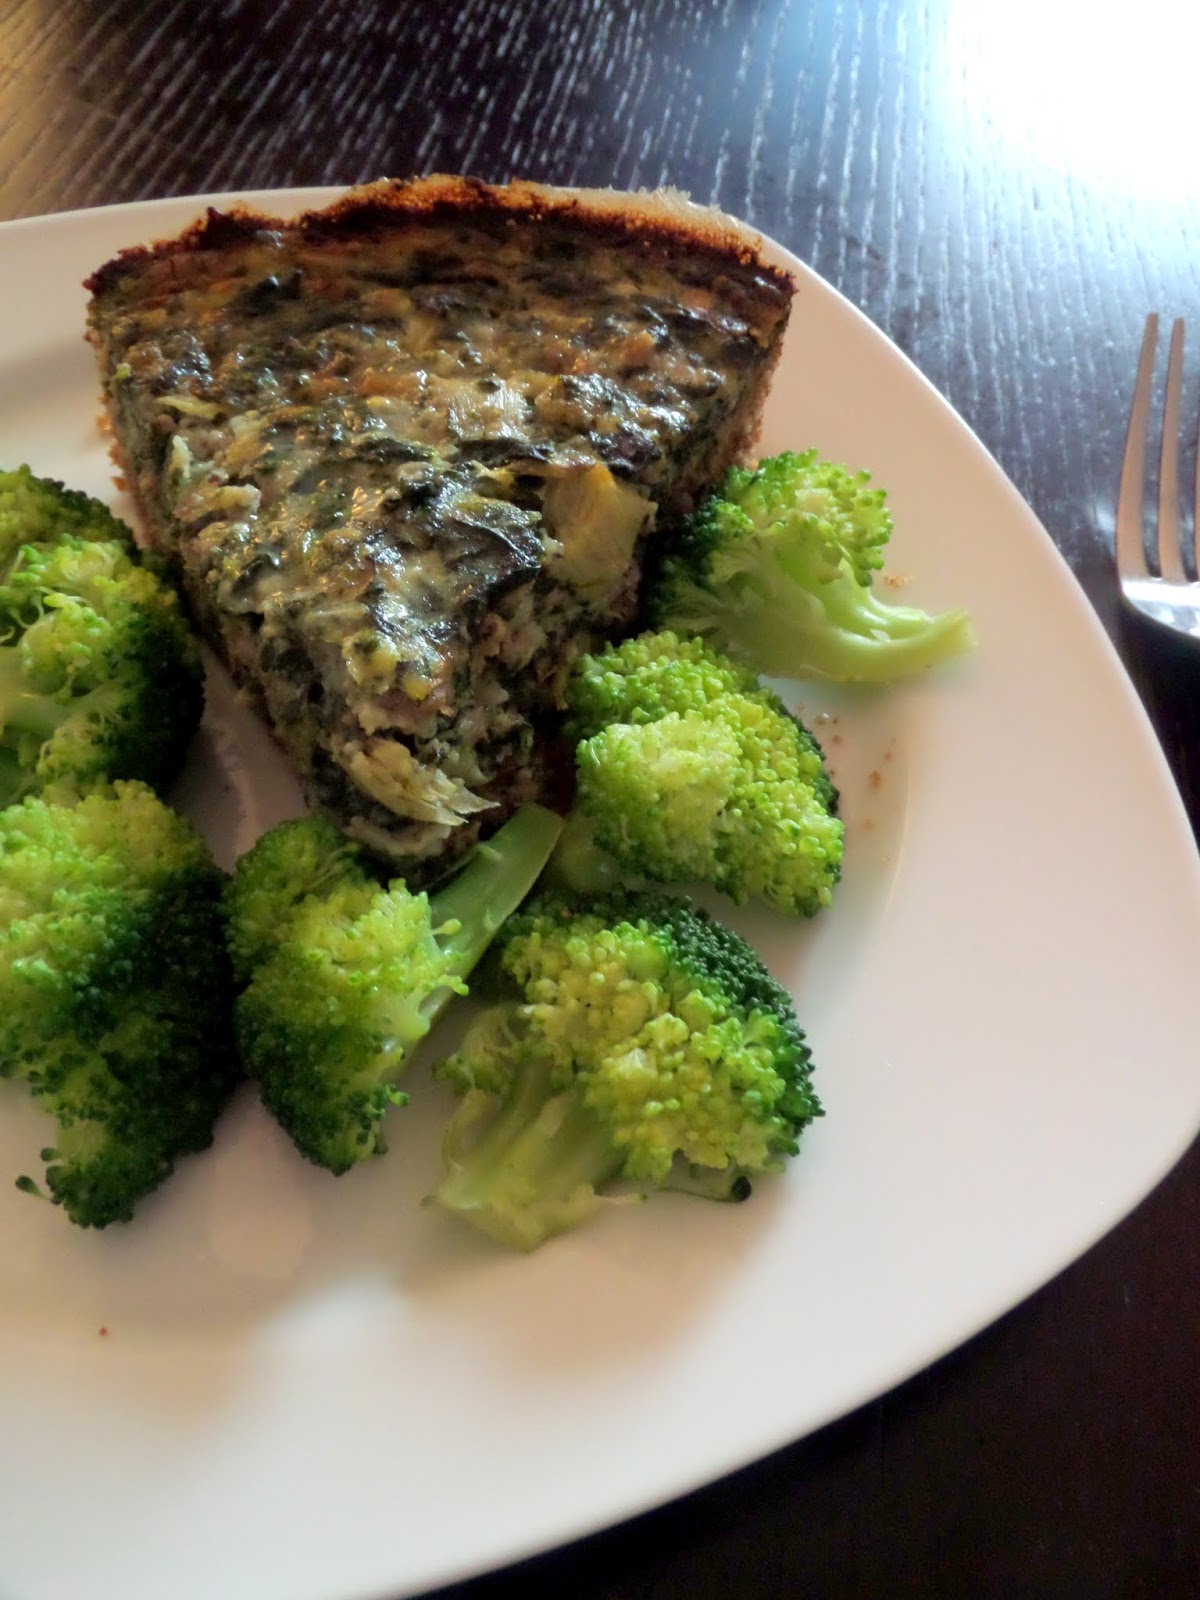 Spinach Artichoke Quiche:  A quiche packed with turkey sausage, cheese, spinach, and artichoke hearts.